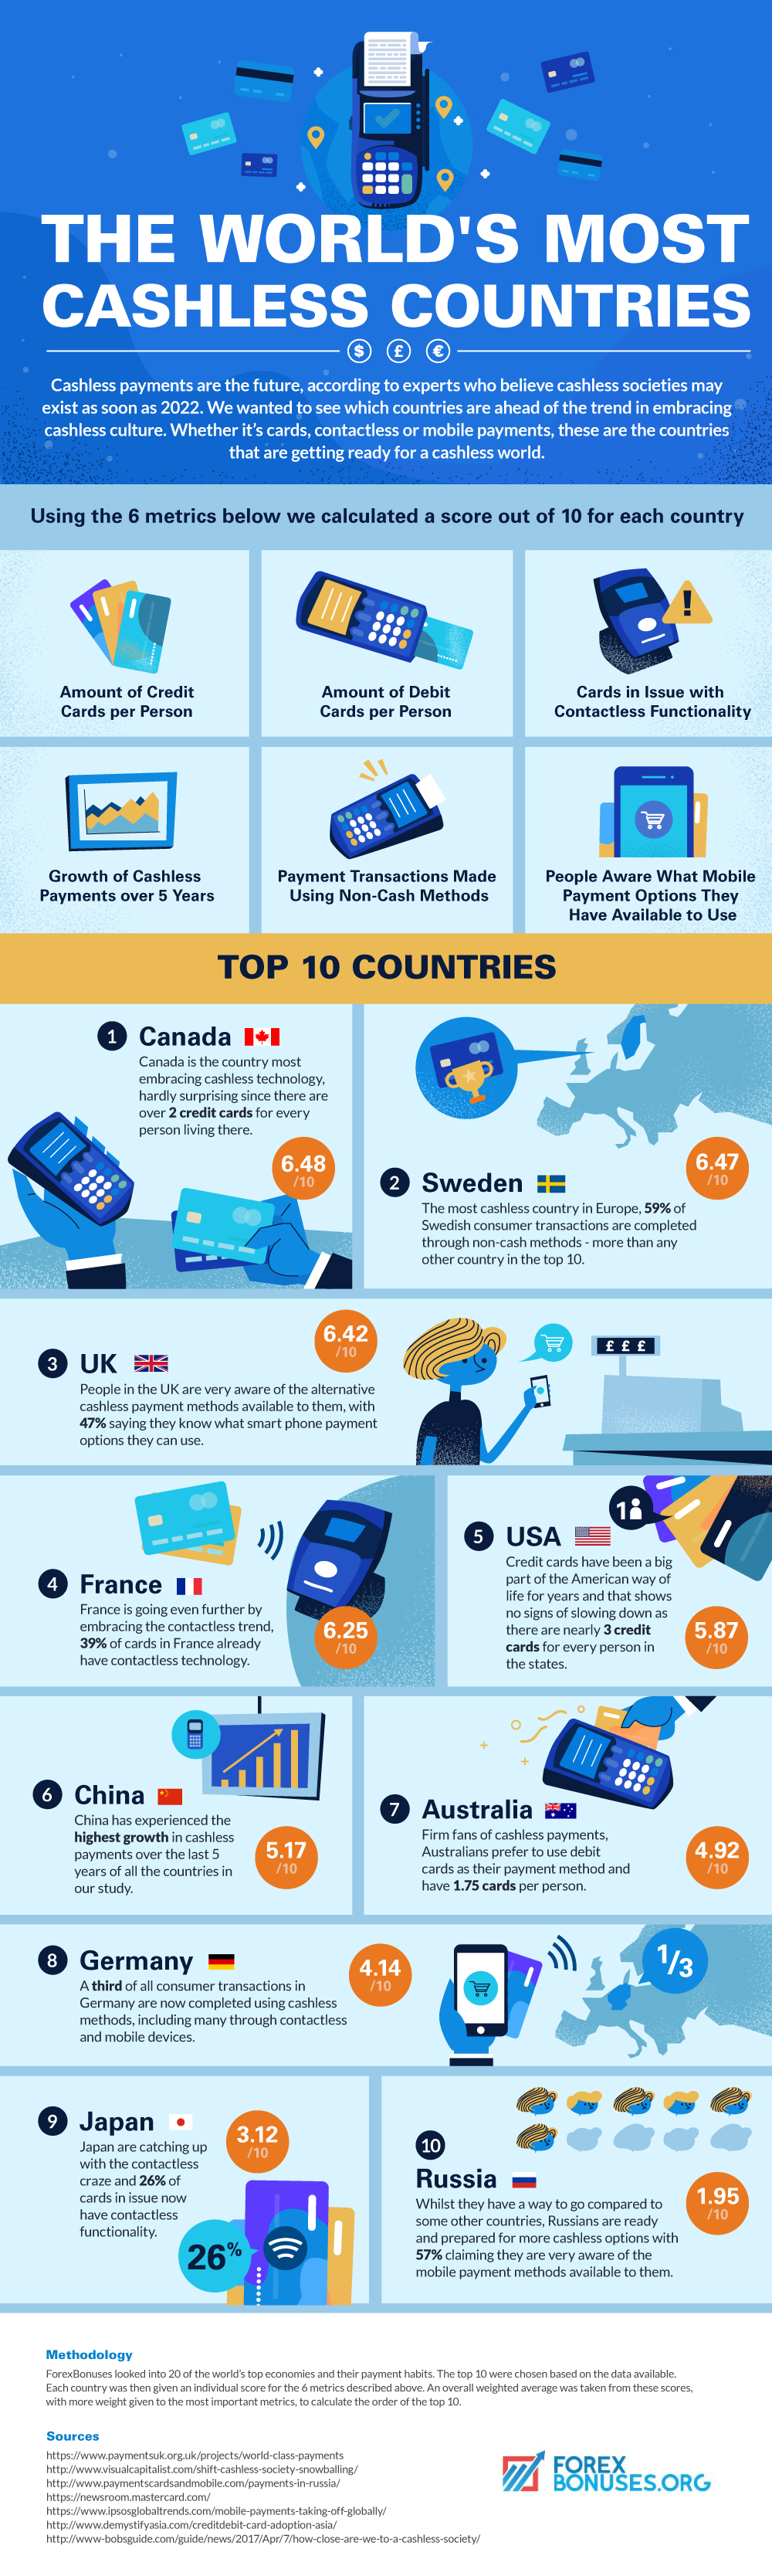 Cashless Payment Countries Infographic